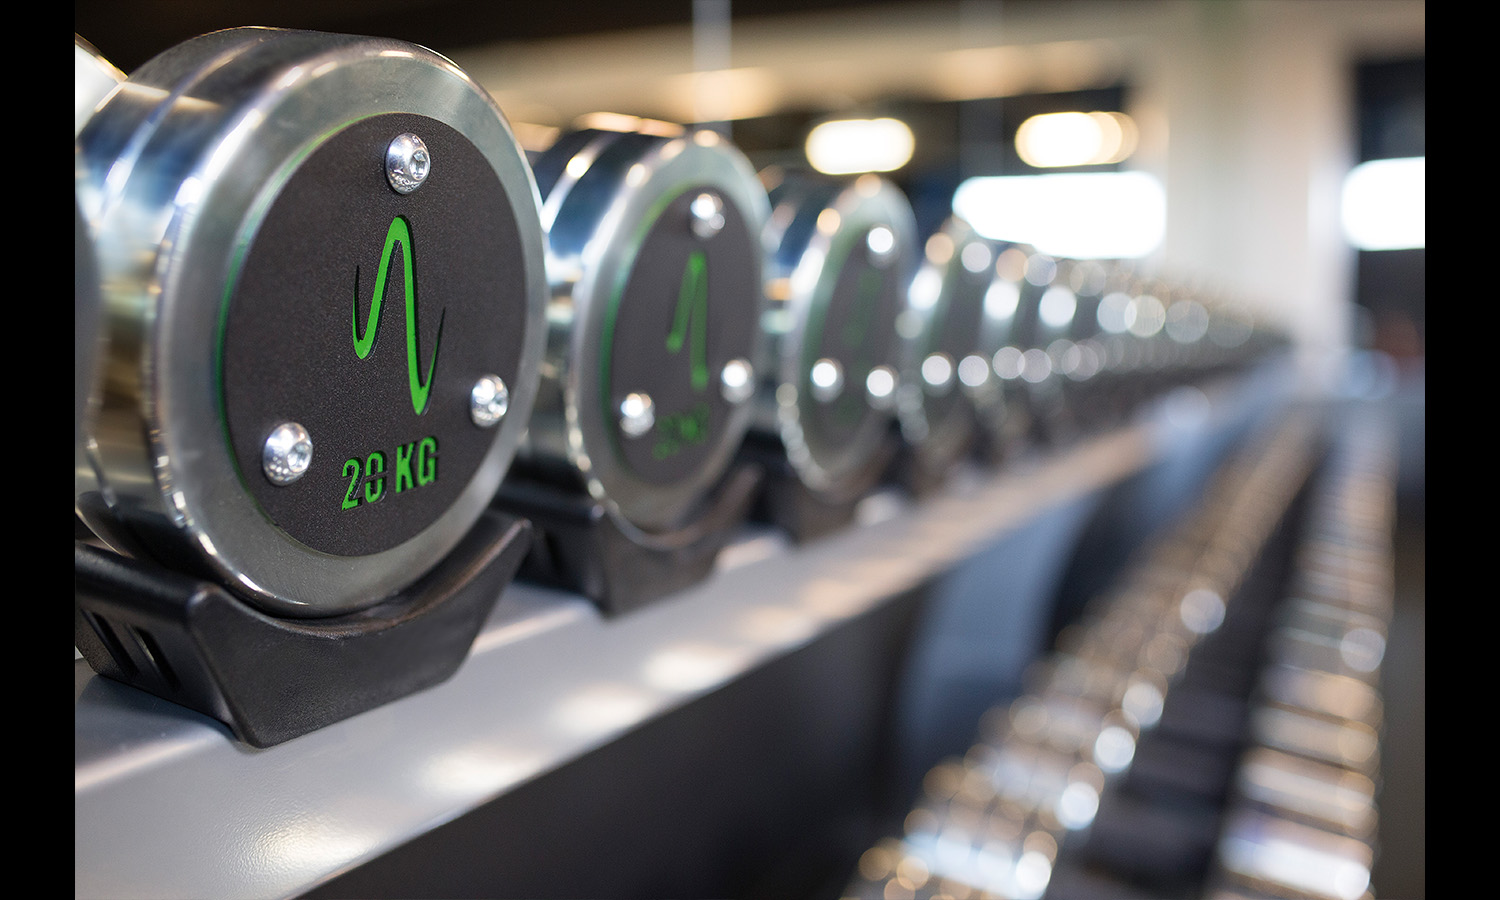 advertising image of weights at gym